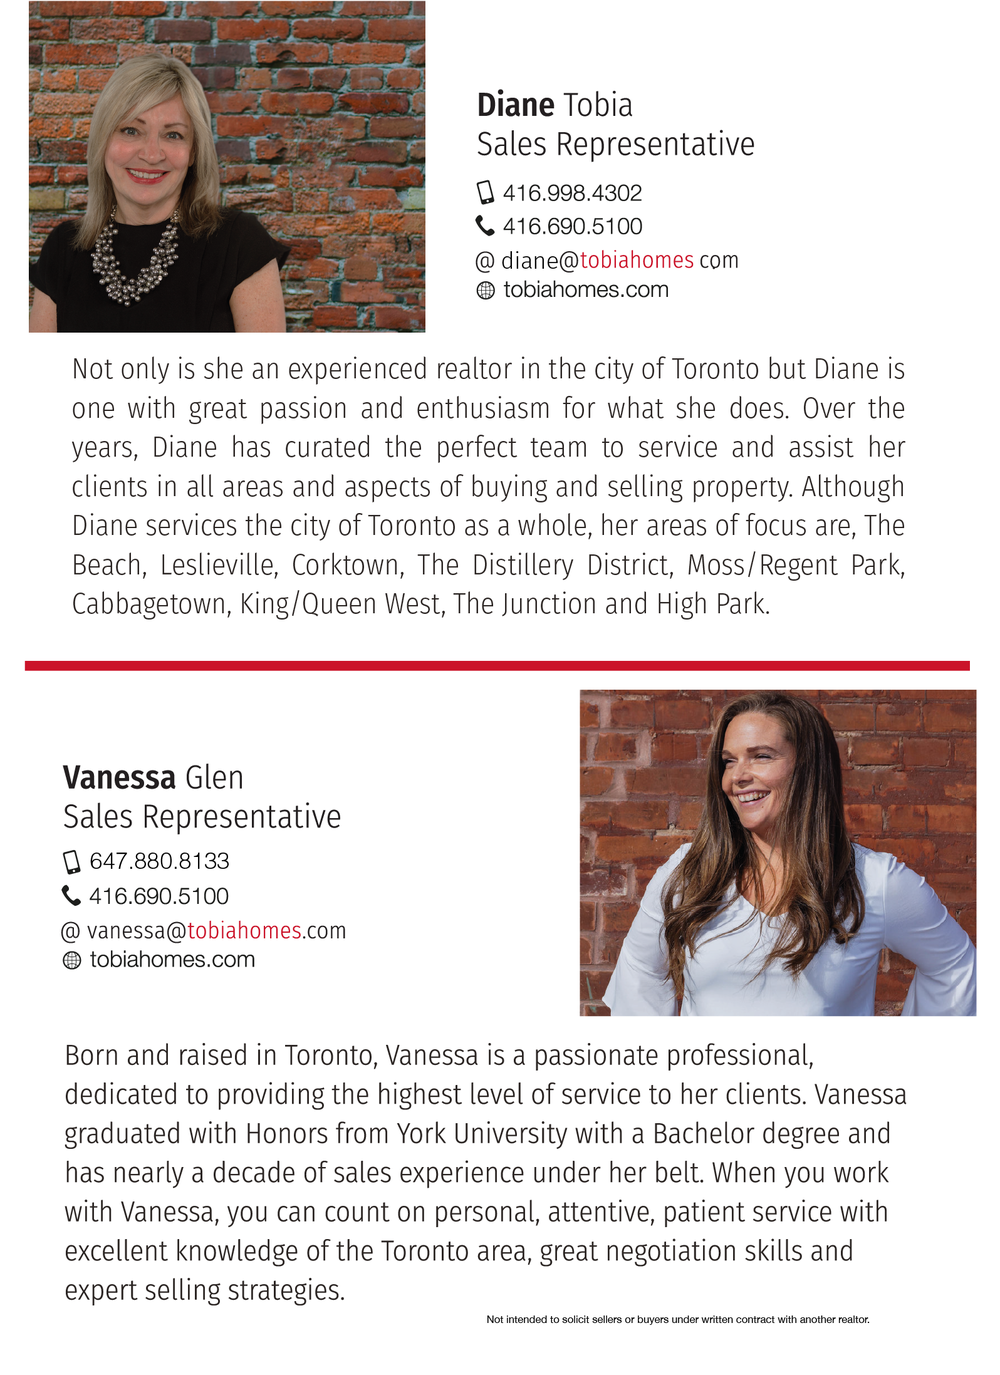 Tobia_Homes_Presentation-Digital_Download-BUYERS-0618_About Us.png